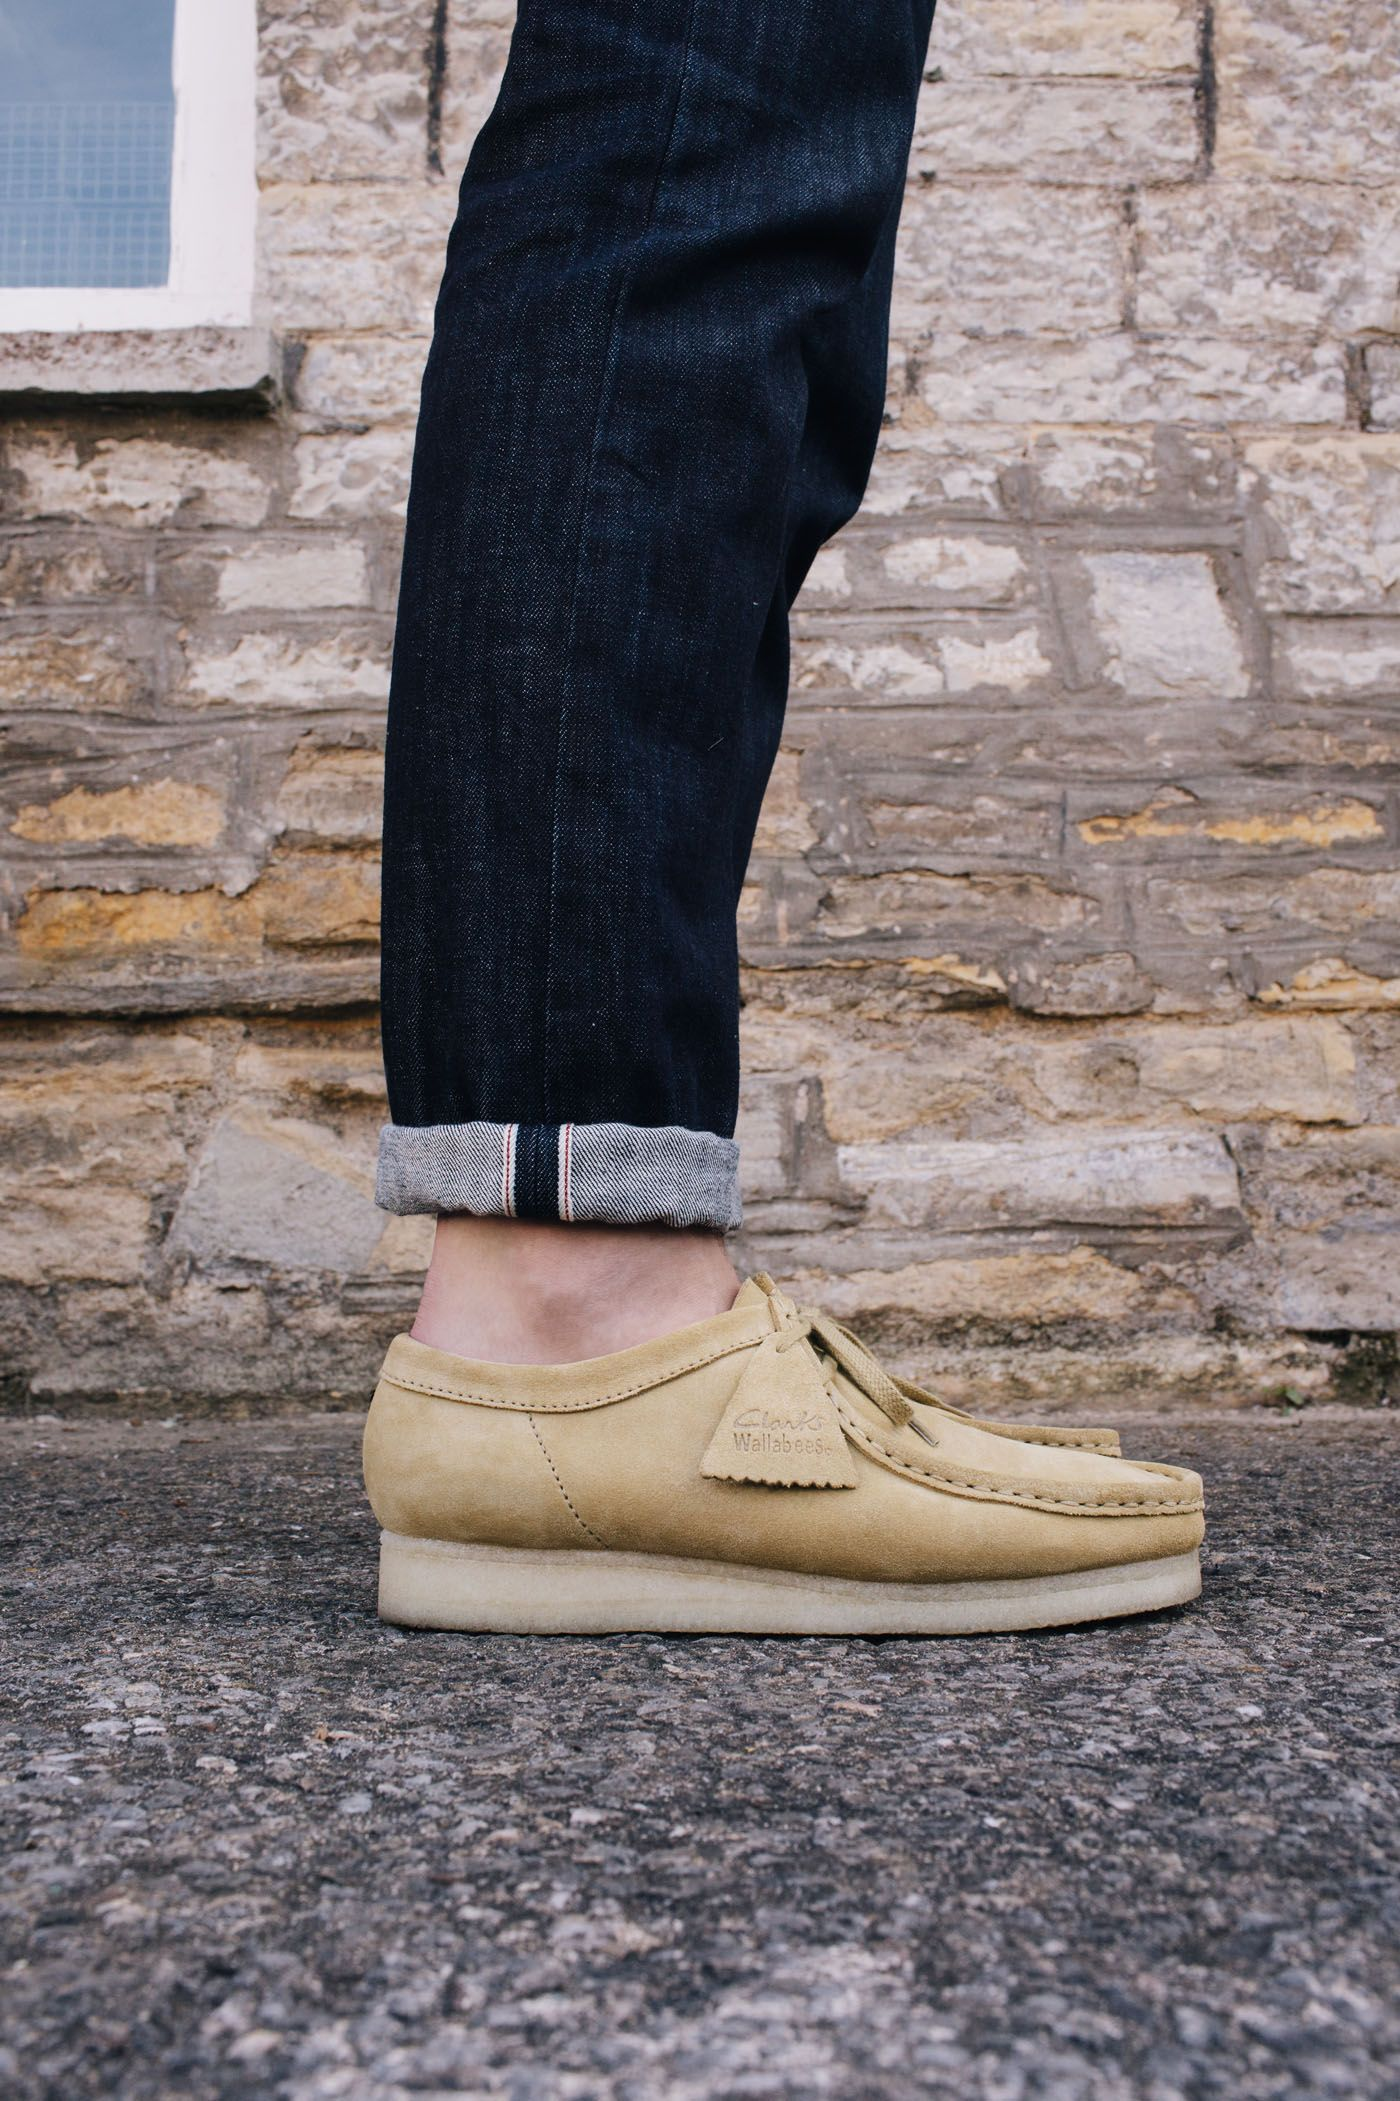 35998c2f3aa8 Wallabee in maple suede  ClarksOriginals  Mens  Clarks  SS15  Boots  Shoes   Wallabee